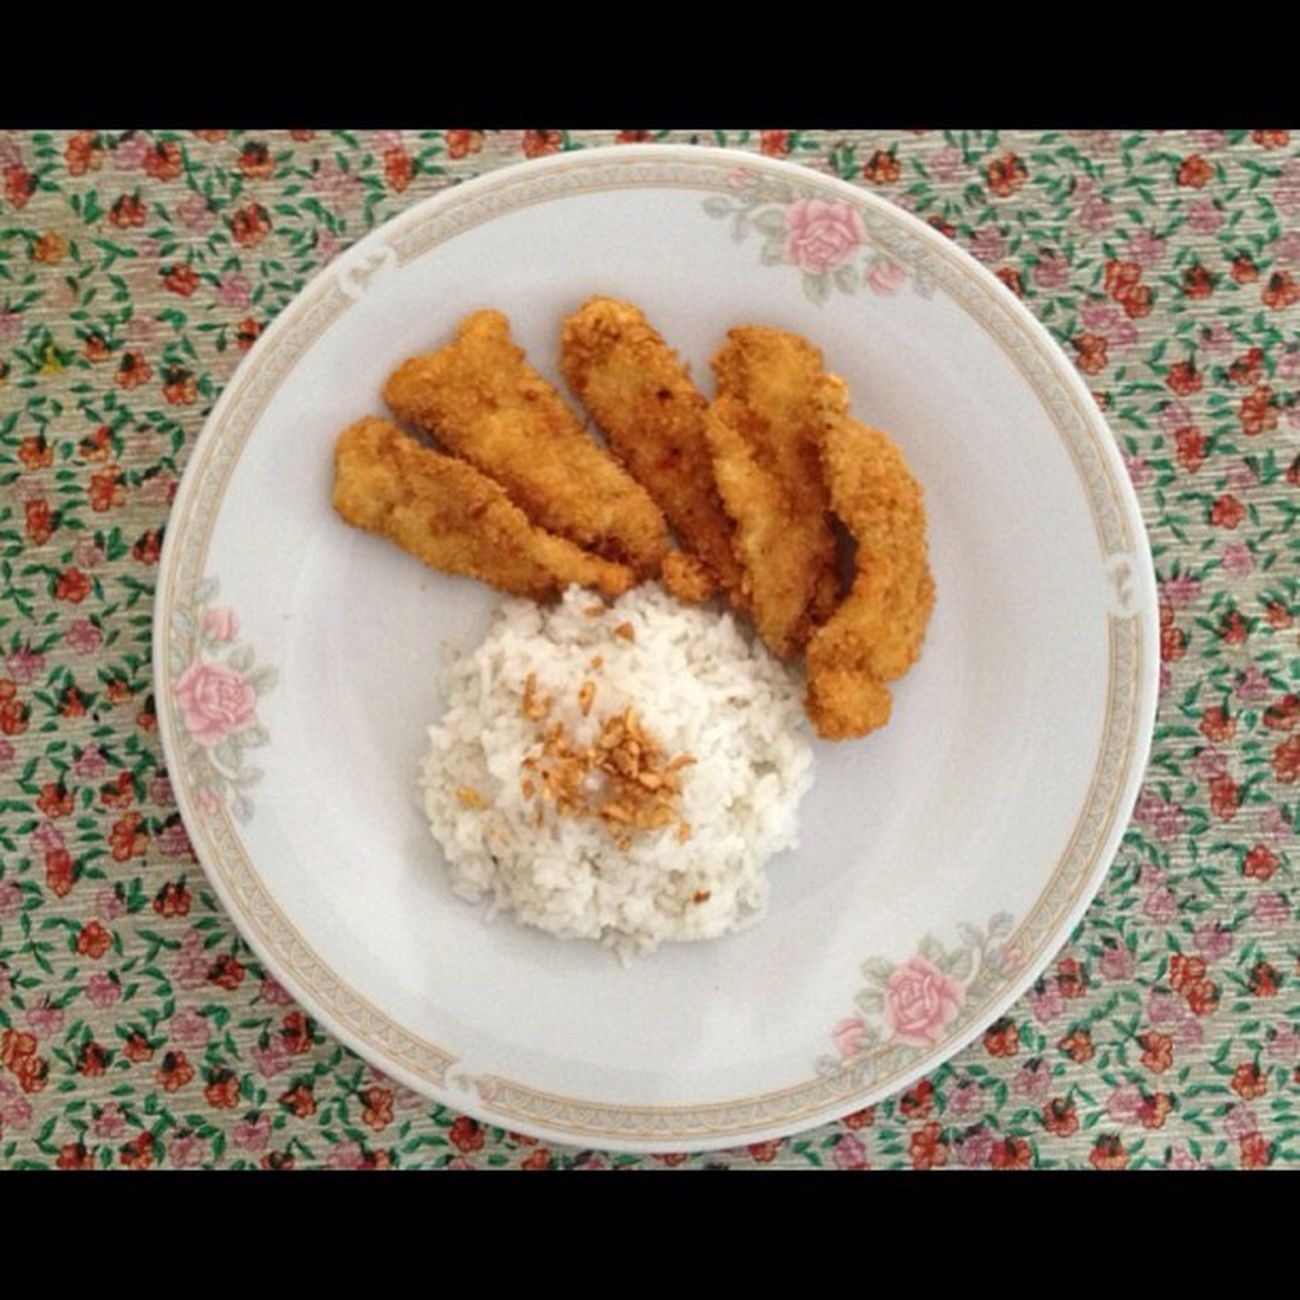 Breakfast for today. Chickenfillet